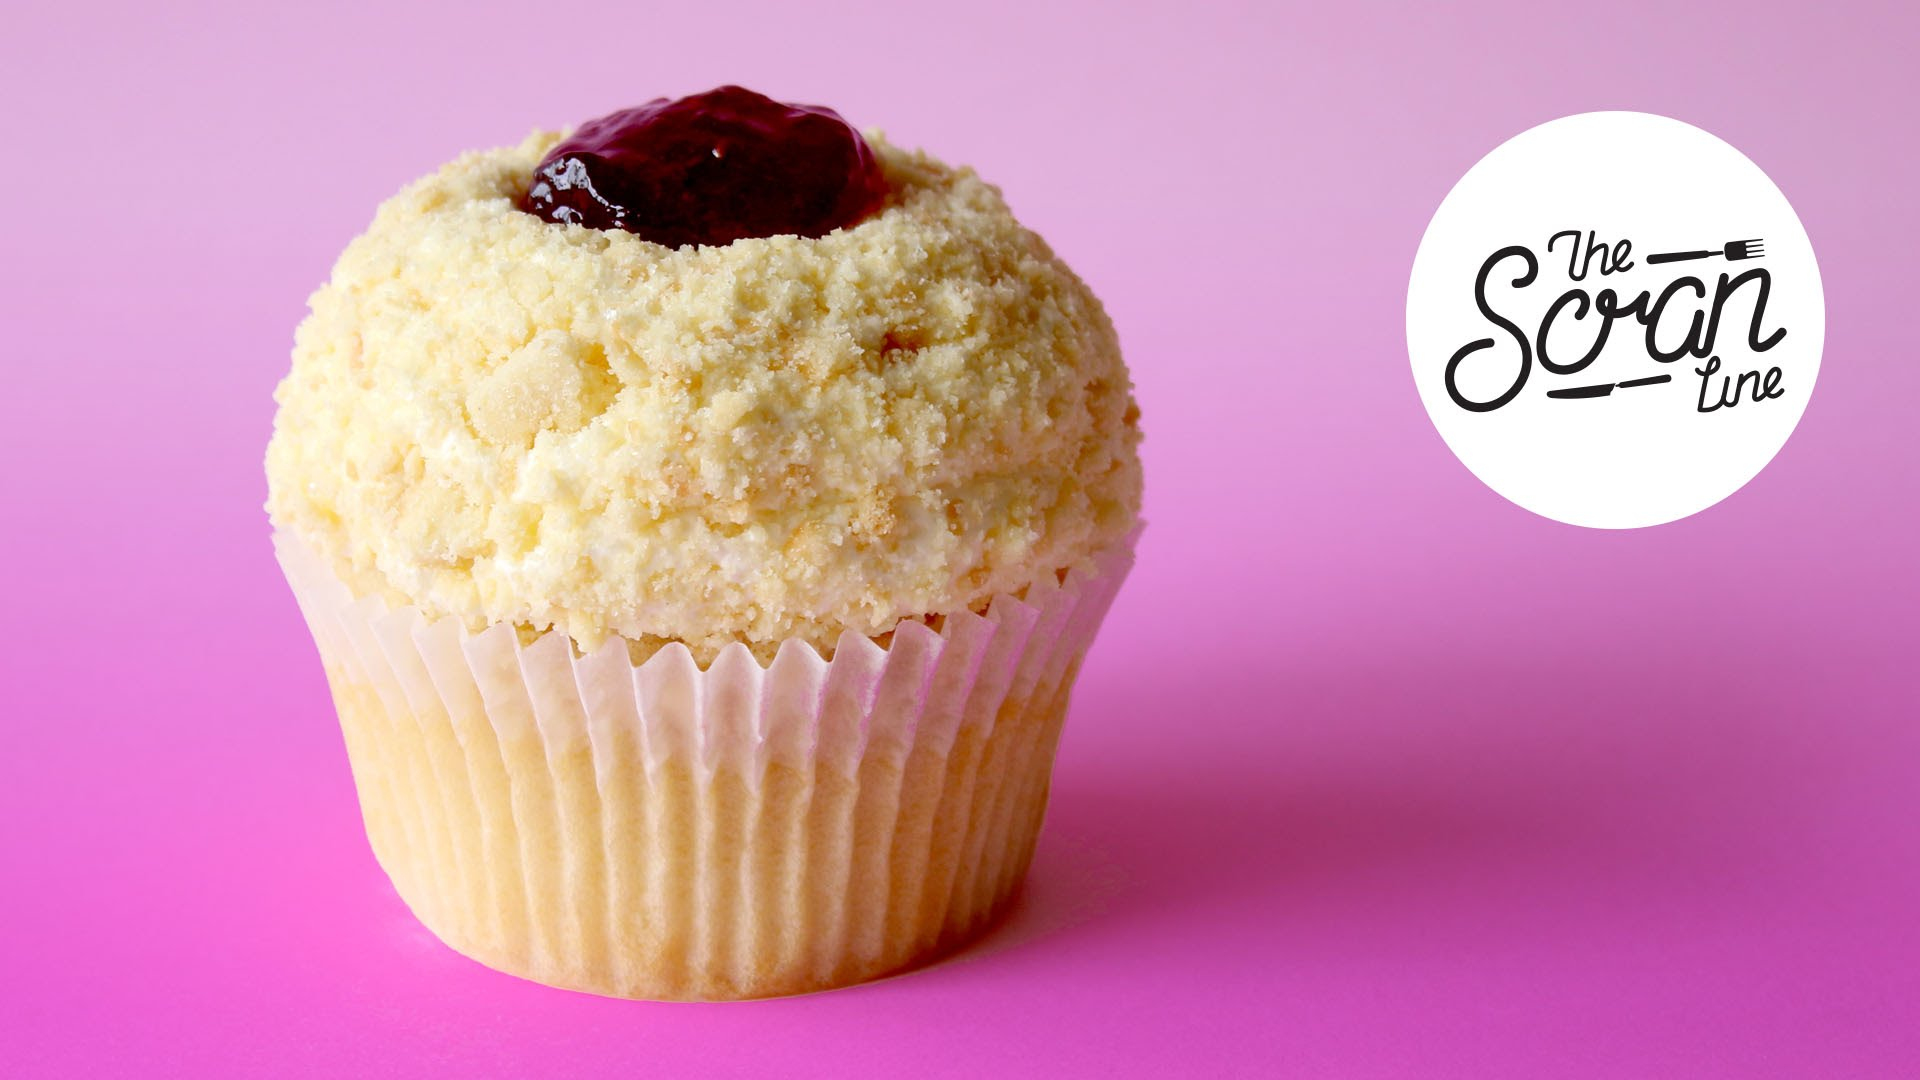 These Jam Drop Cupcakes Look Adorable But Have An Even Better Secret Inside